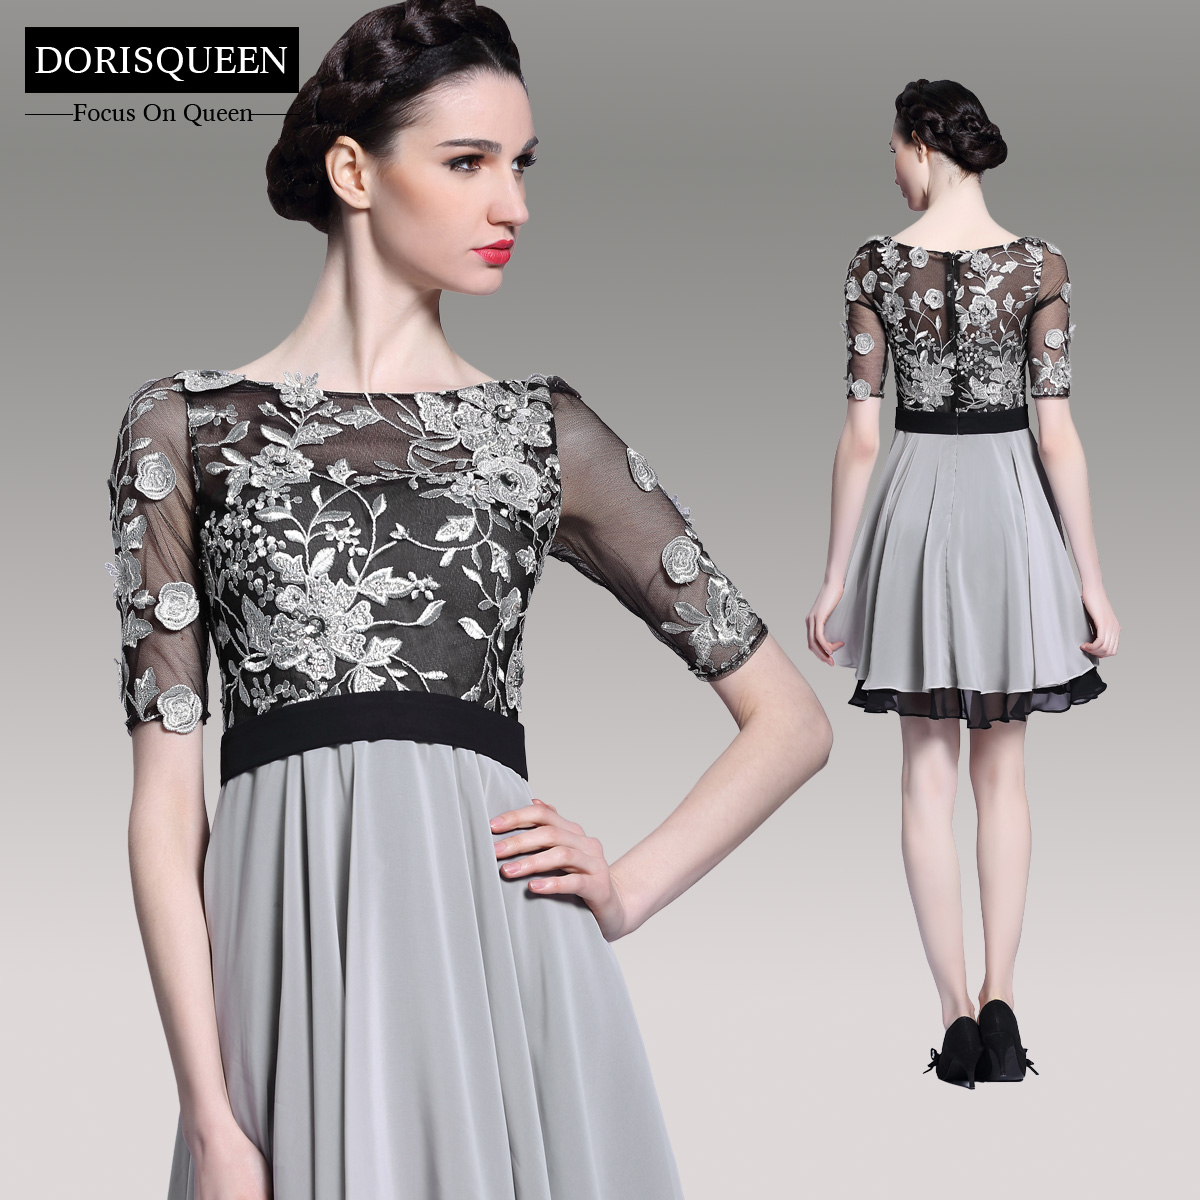 dorisqueen.com ready to wear manufacturer selling affordable 2014 short dresses 6076(1)